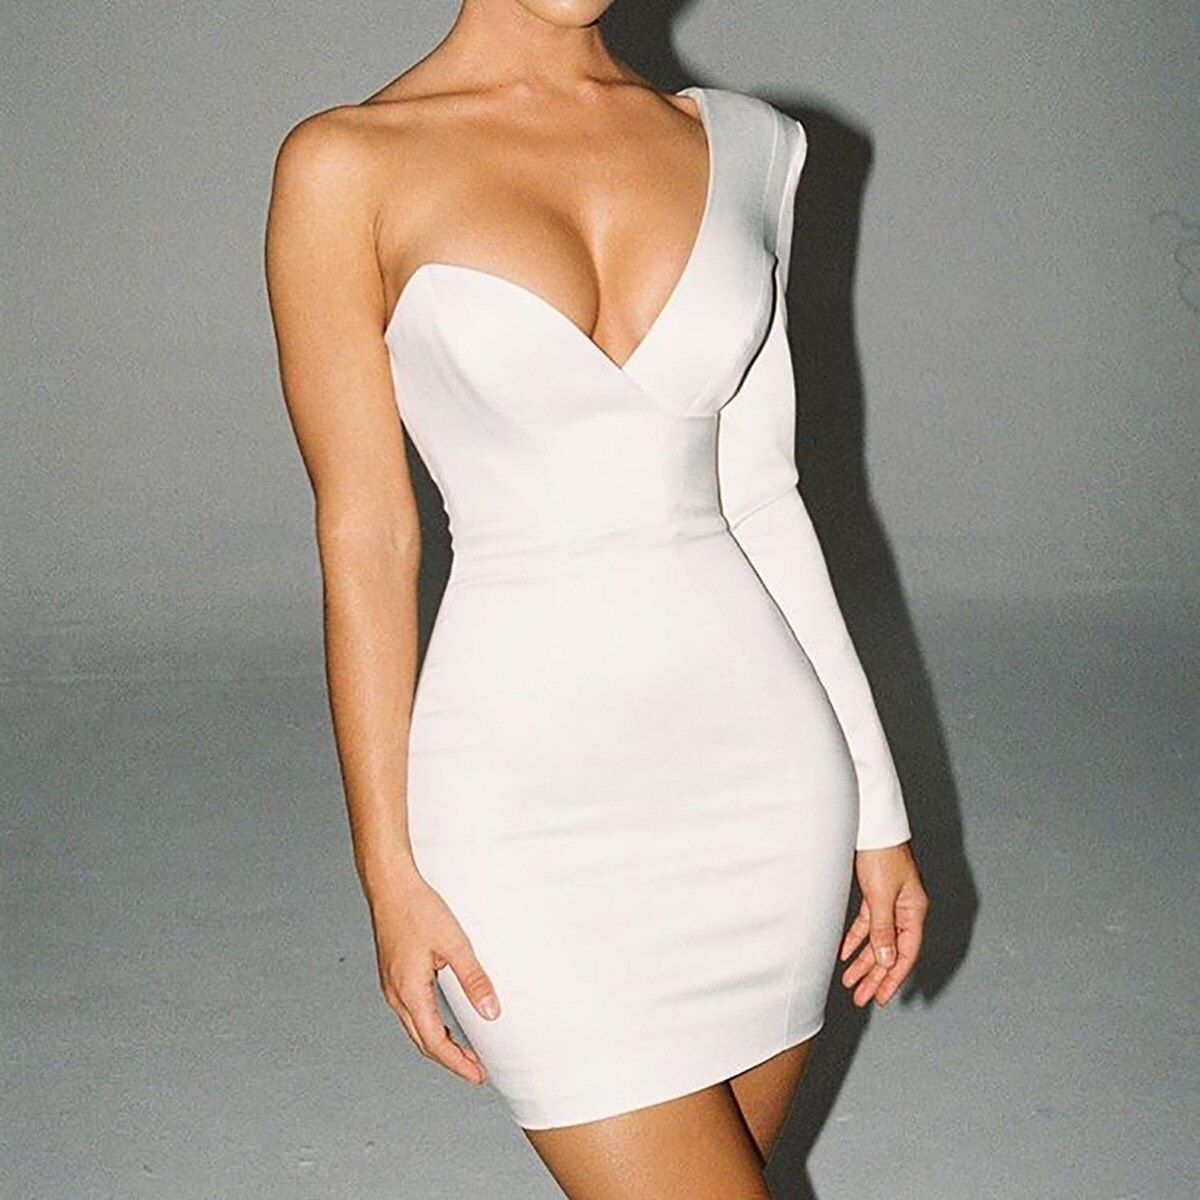 New Women/'s Stylish Sleeveless V Neck Solid Color Bodycon Club Short Dress Party